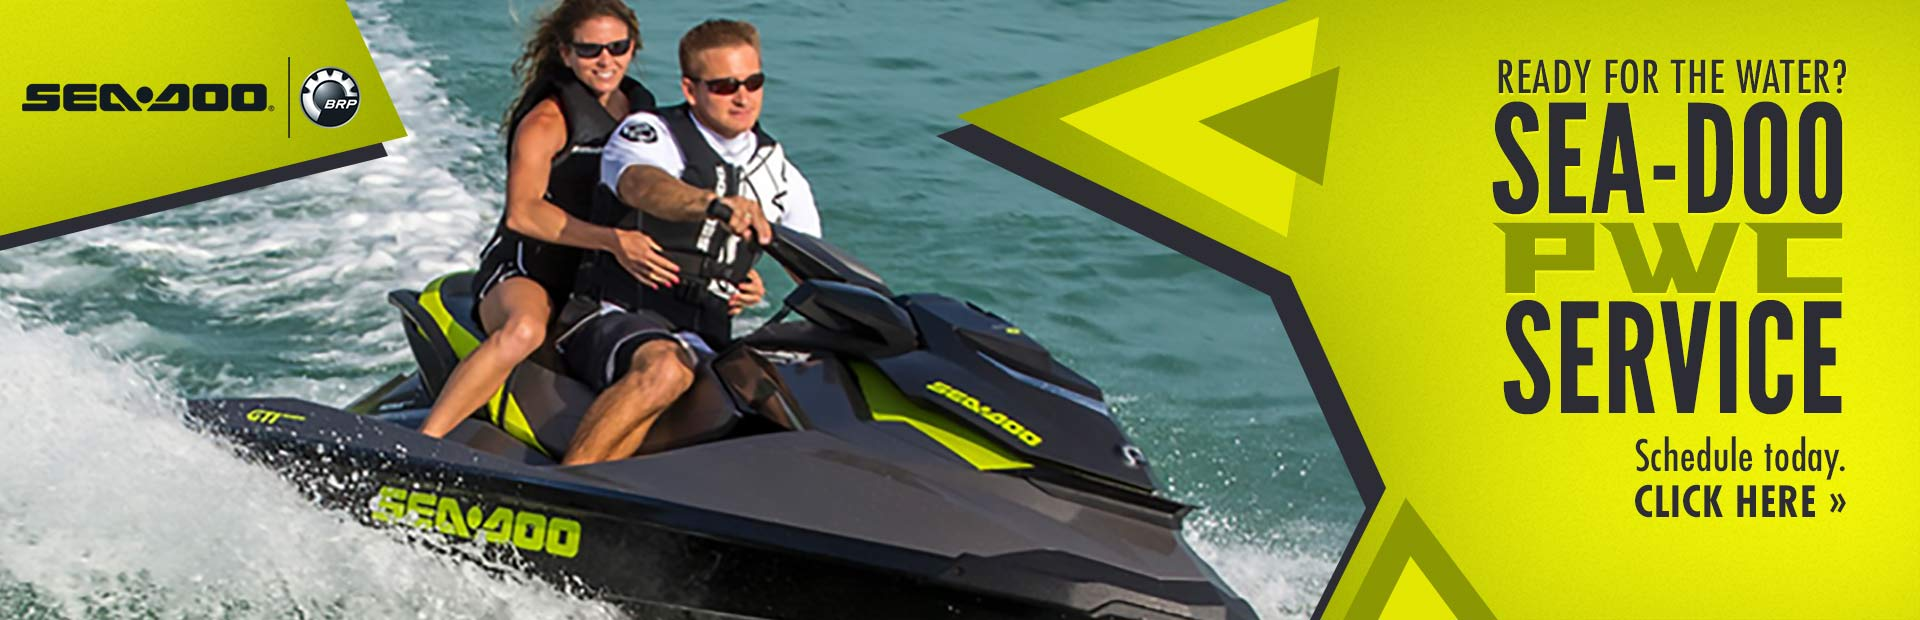 Click here to schedule your Sea-Doo PWC service!